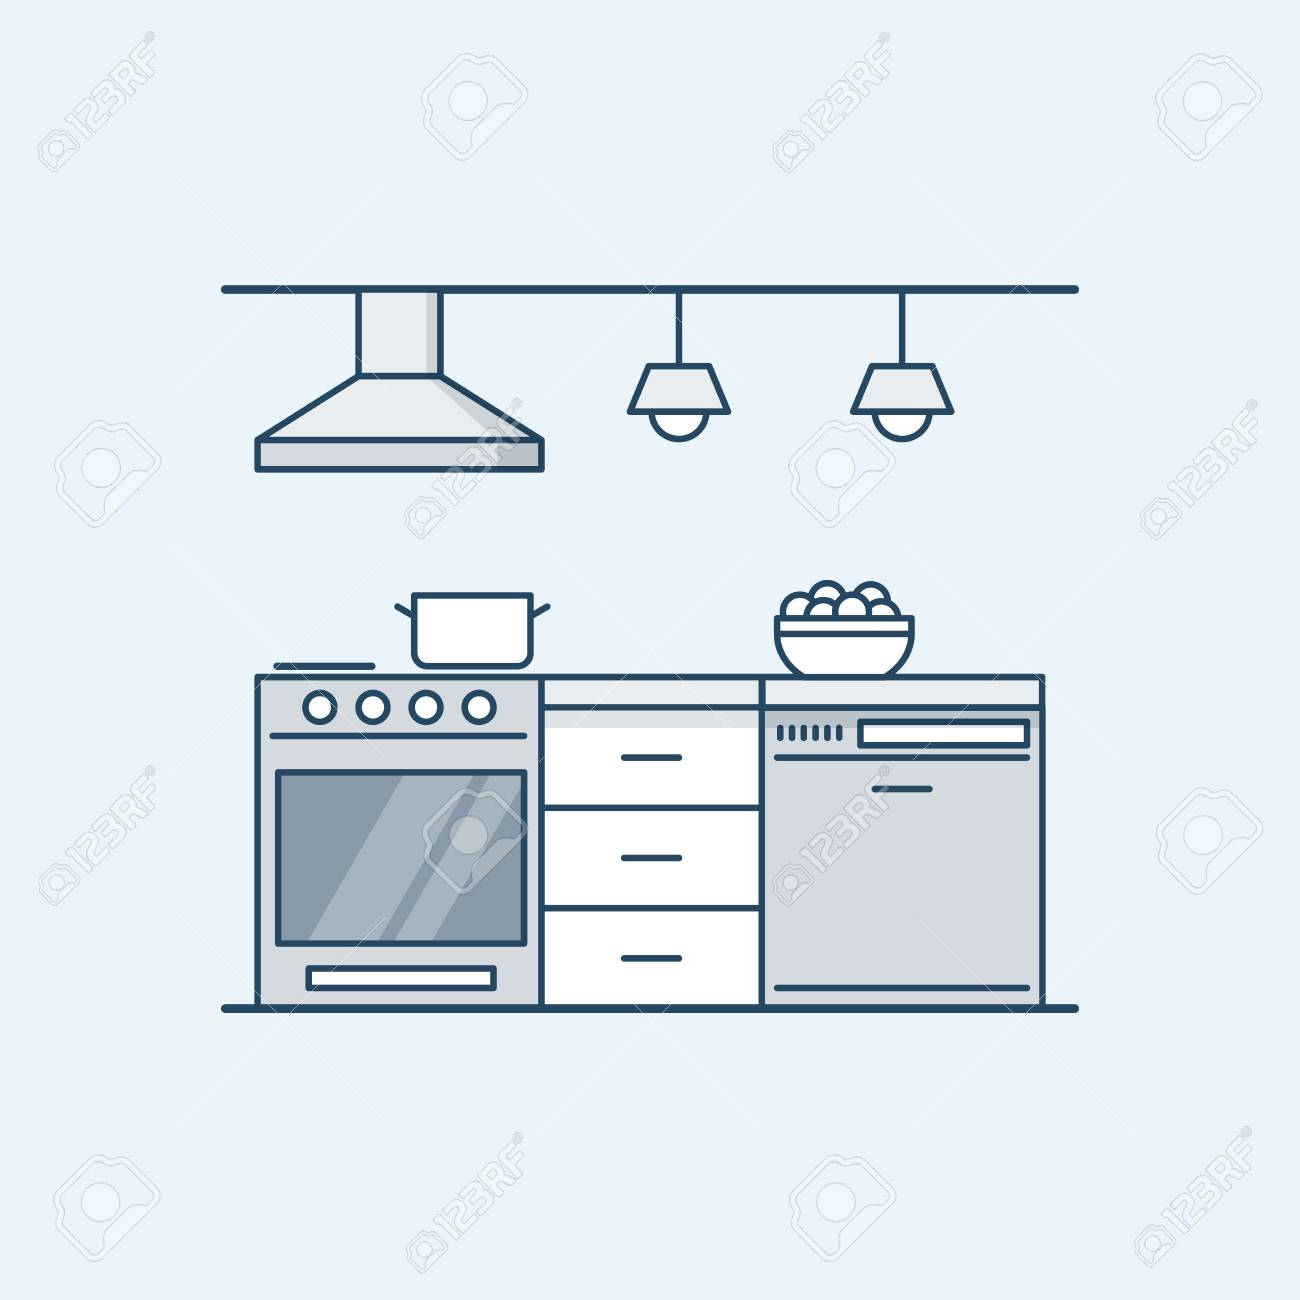 Modern Kitchen Interior With Gas Stove And Dishwasher Built In Appliances Vector Illustration